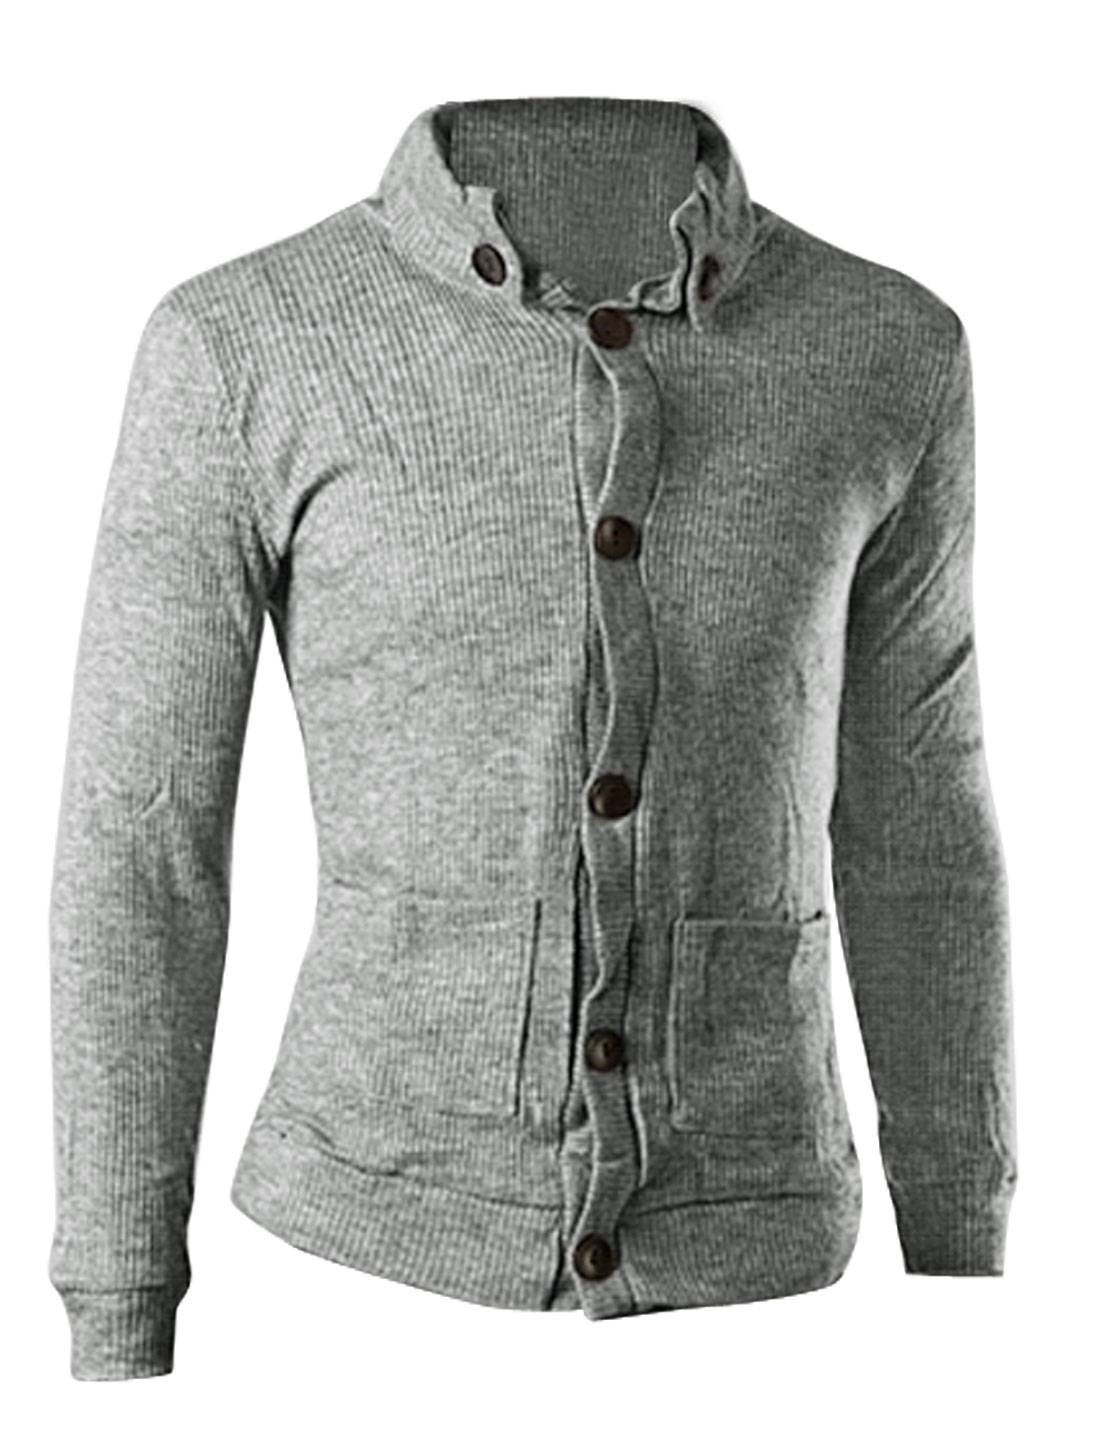 Men Stand Collar Two Front Pockets Casual Knitted Cardigan Heather Gray M